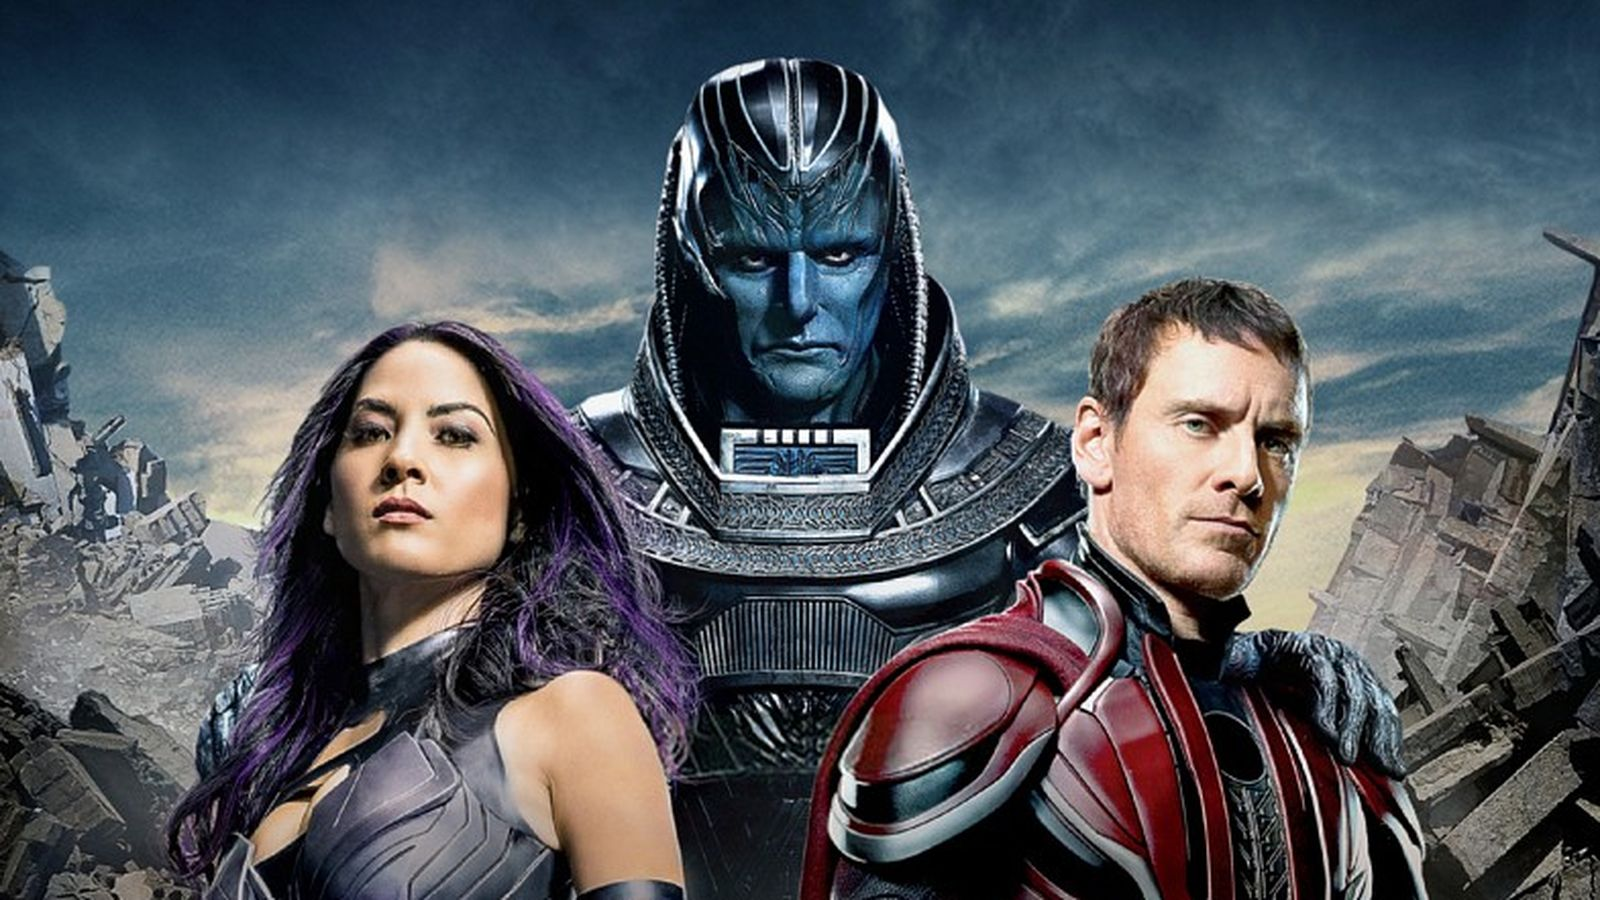 X-Men Apocalypse Poster-No-Text